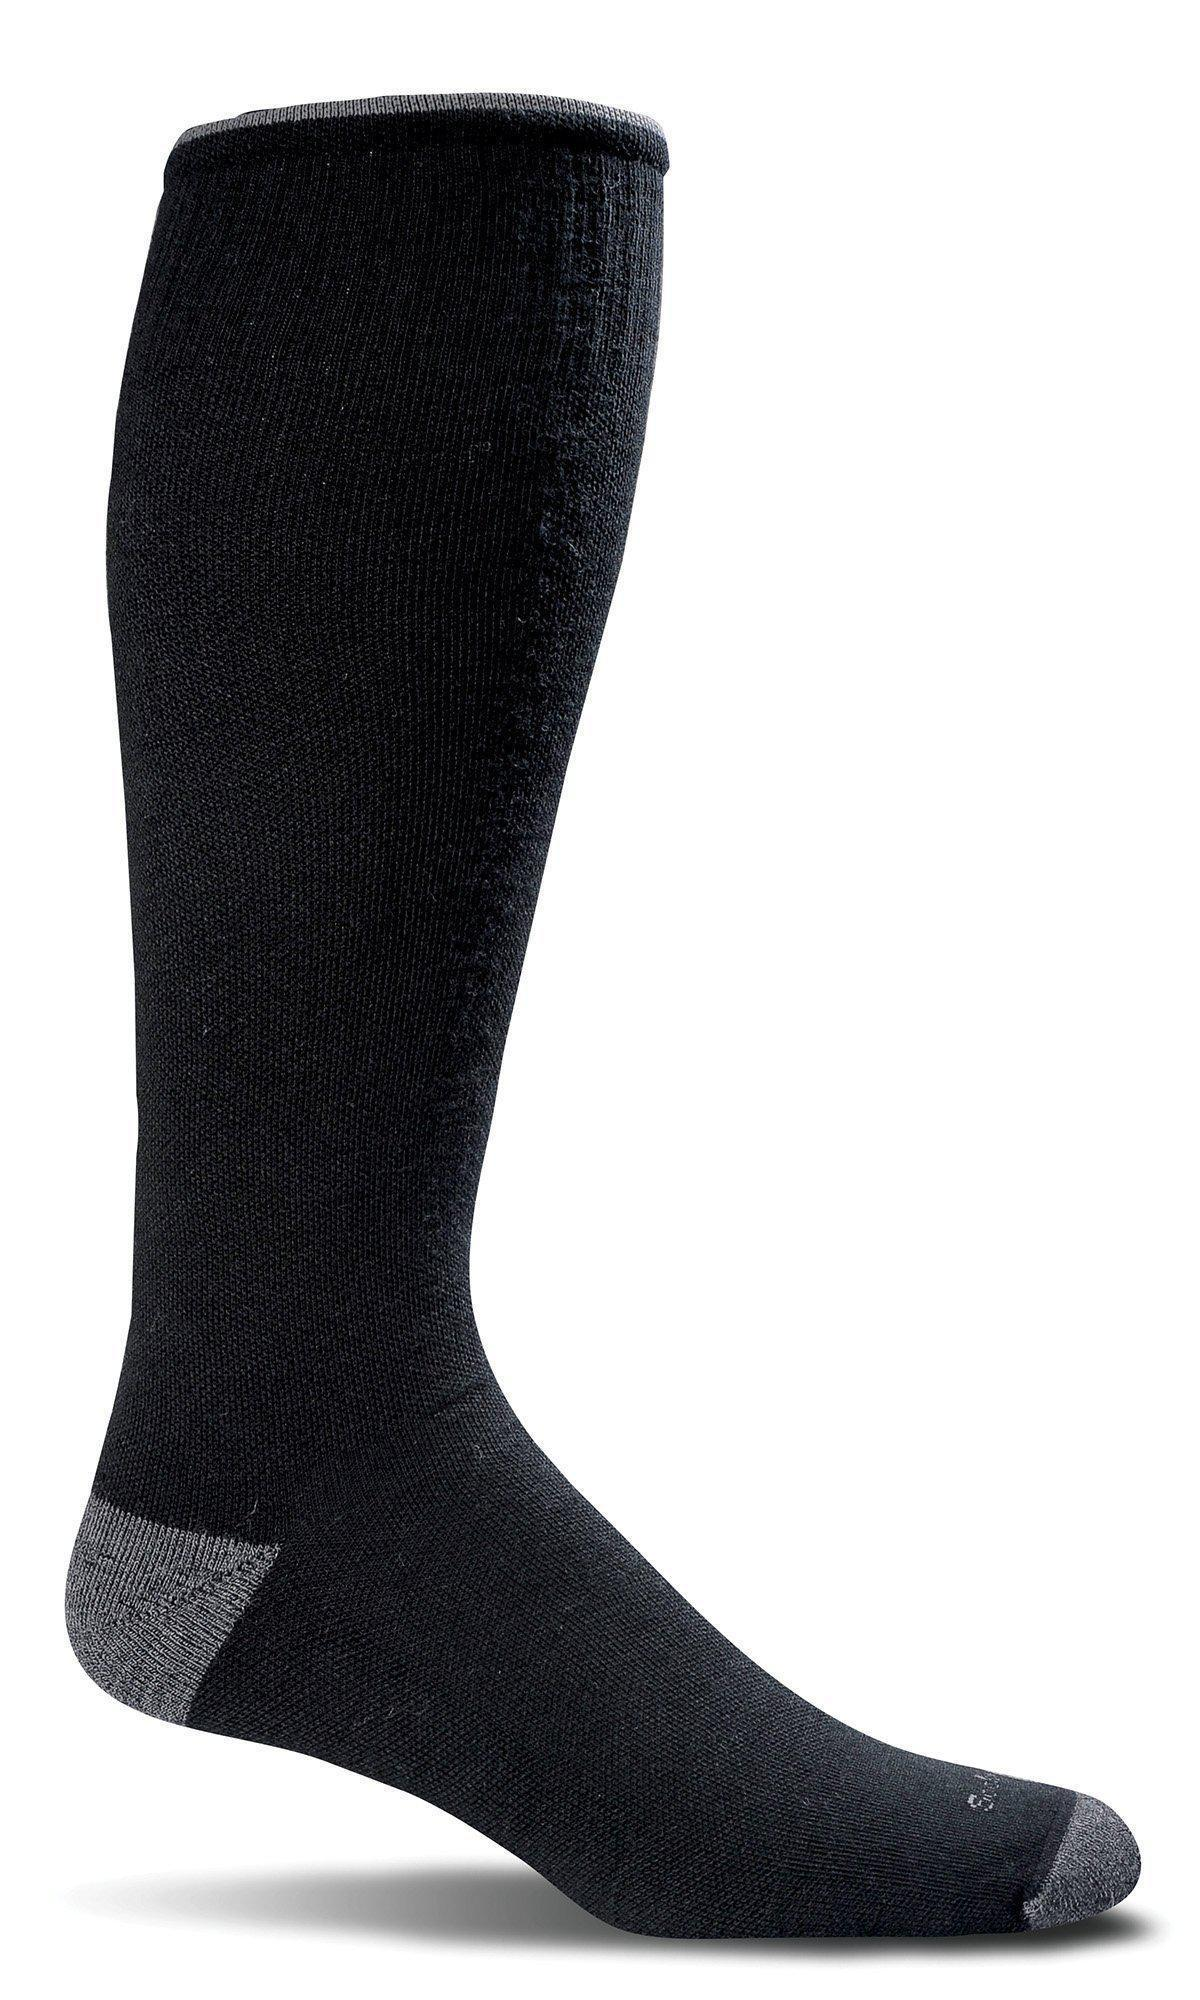 Sockwell - Elevation Firm Graduated Compression (20-30 mmHg) Socks | Men's - Knock Your Socks Off